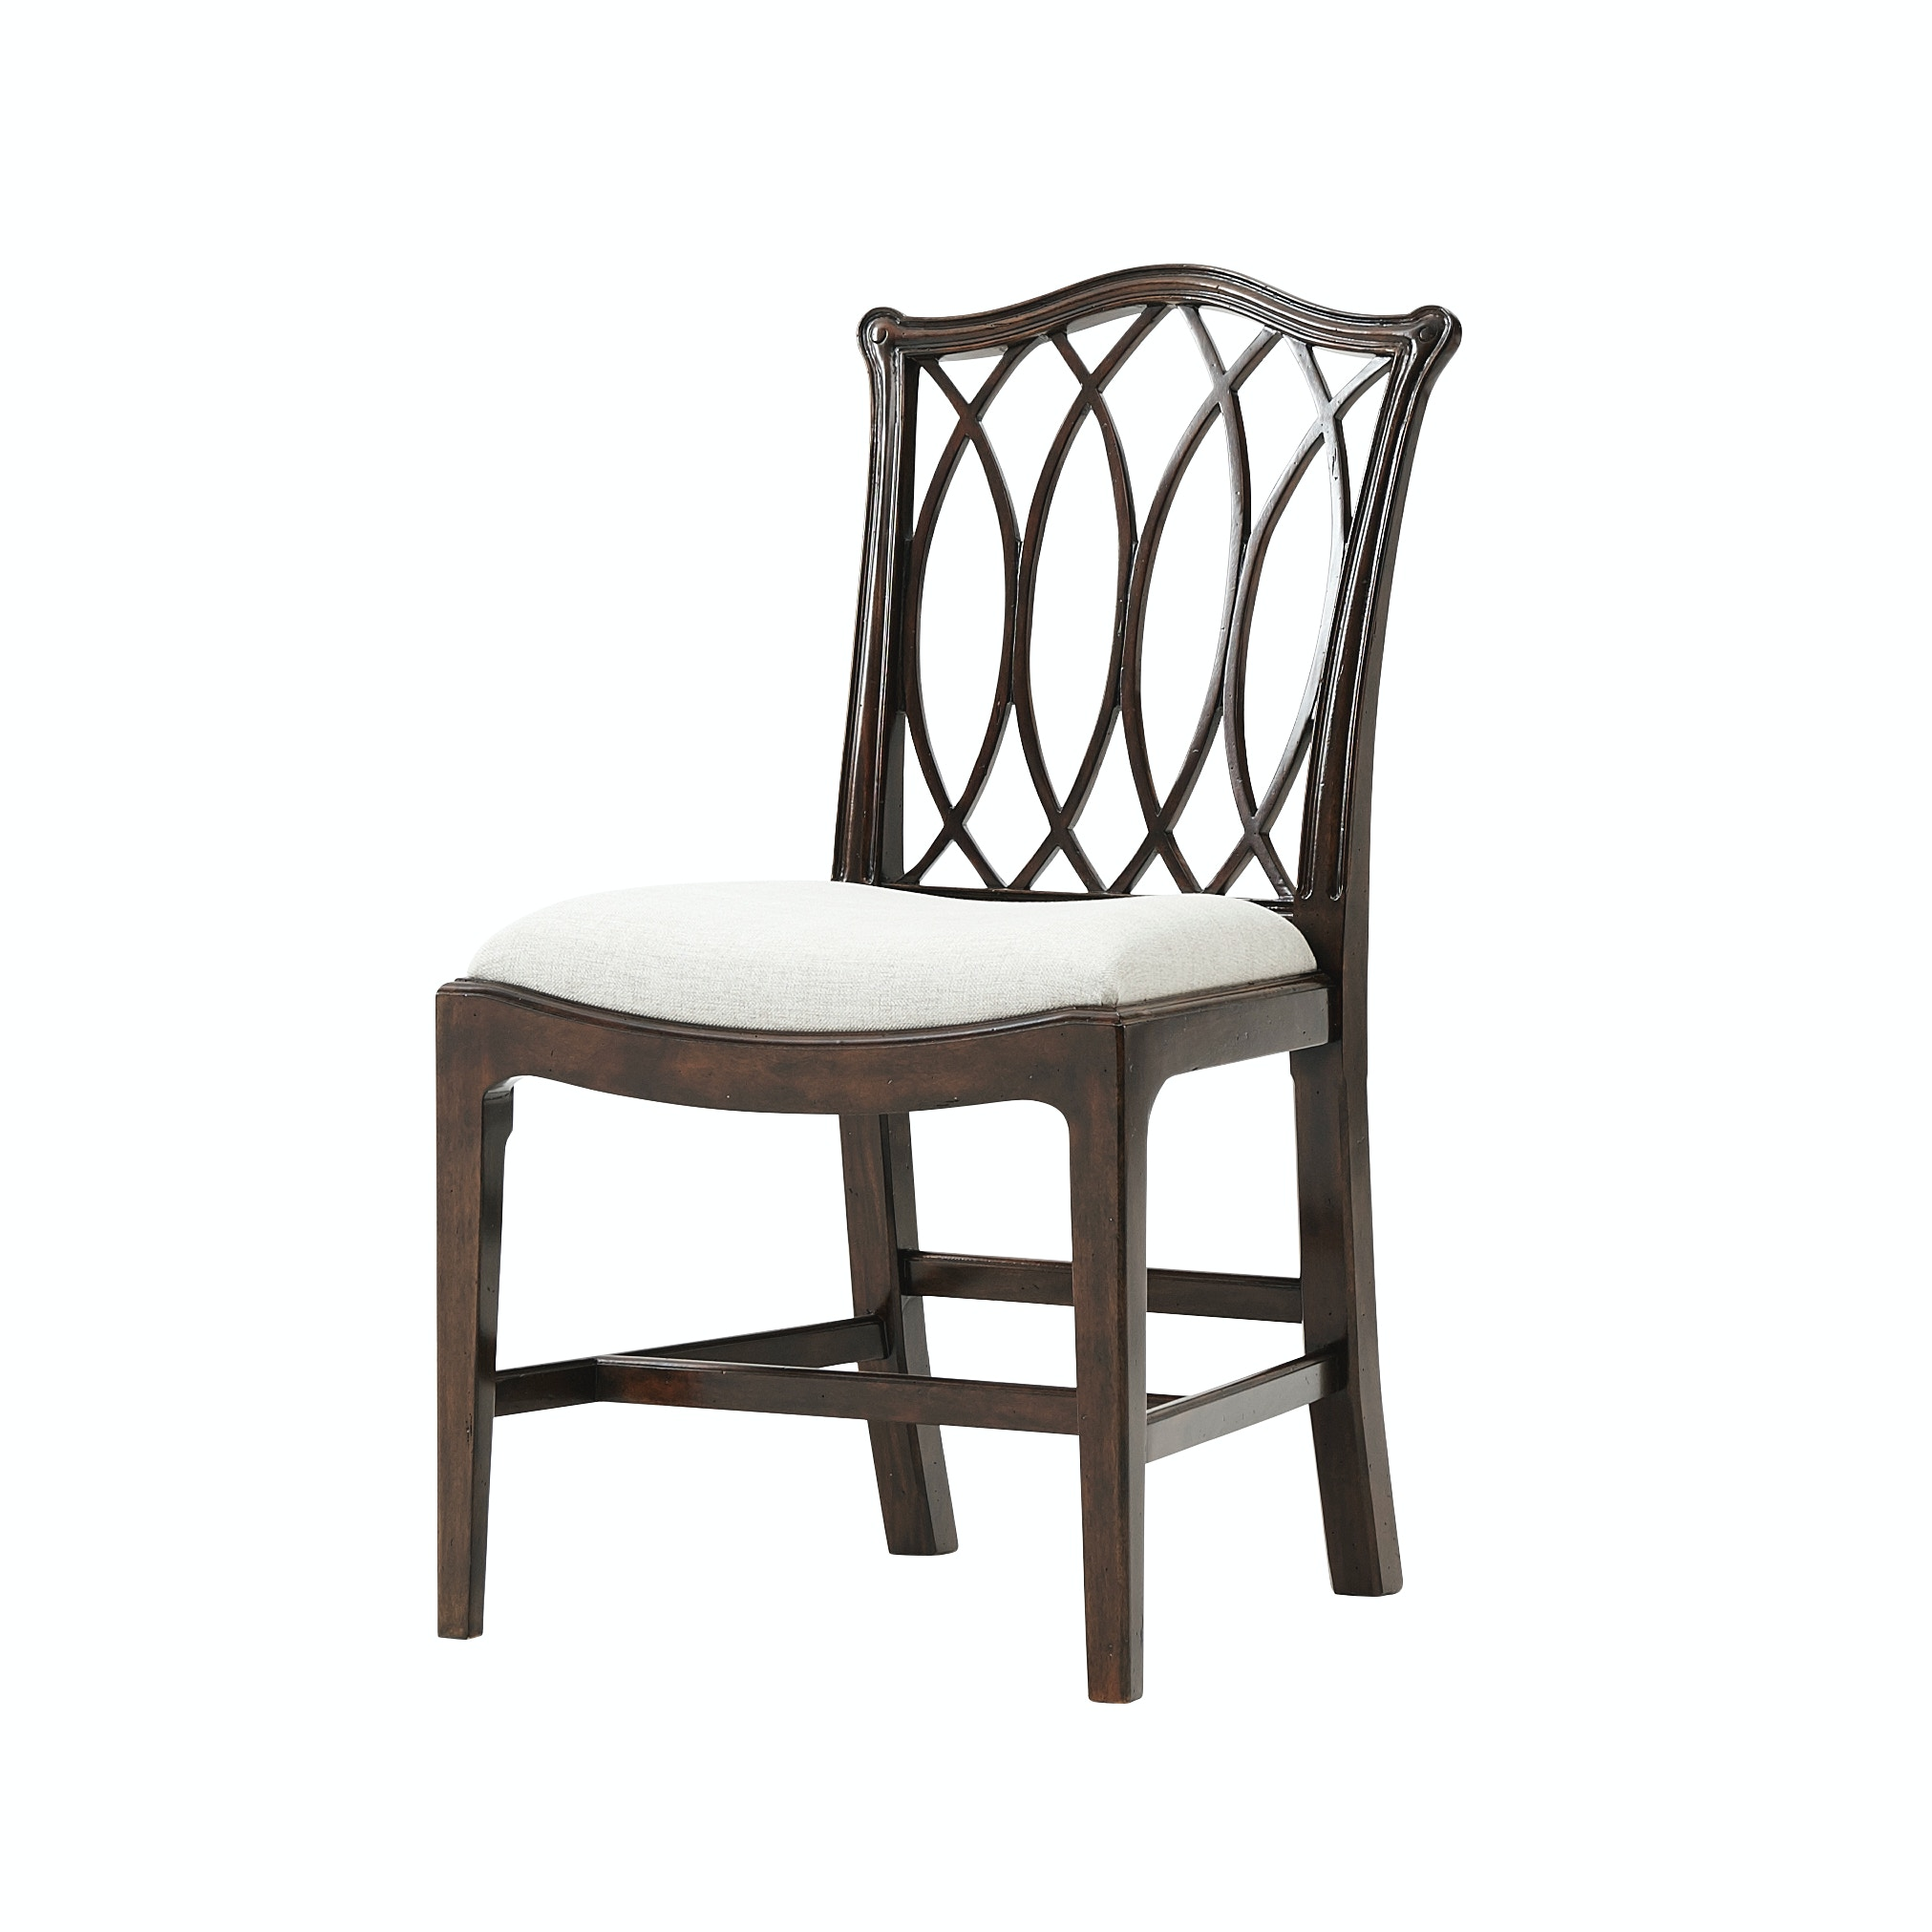 Theodore Alexander Furniture The Trellis Chair 4000 566.1AJM